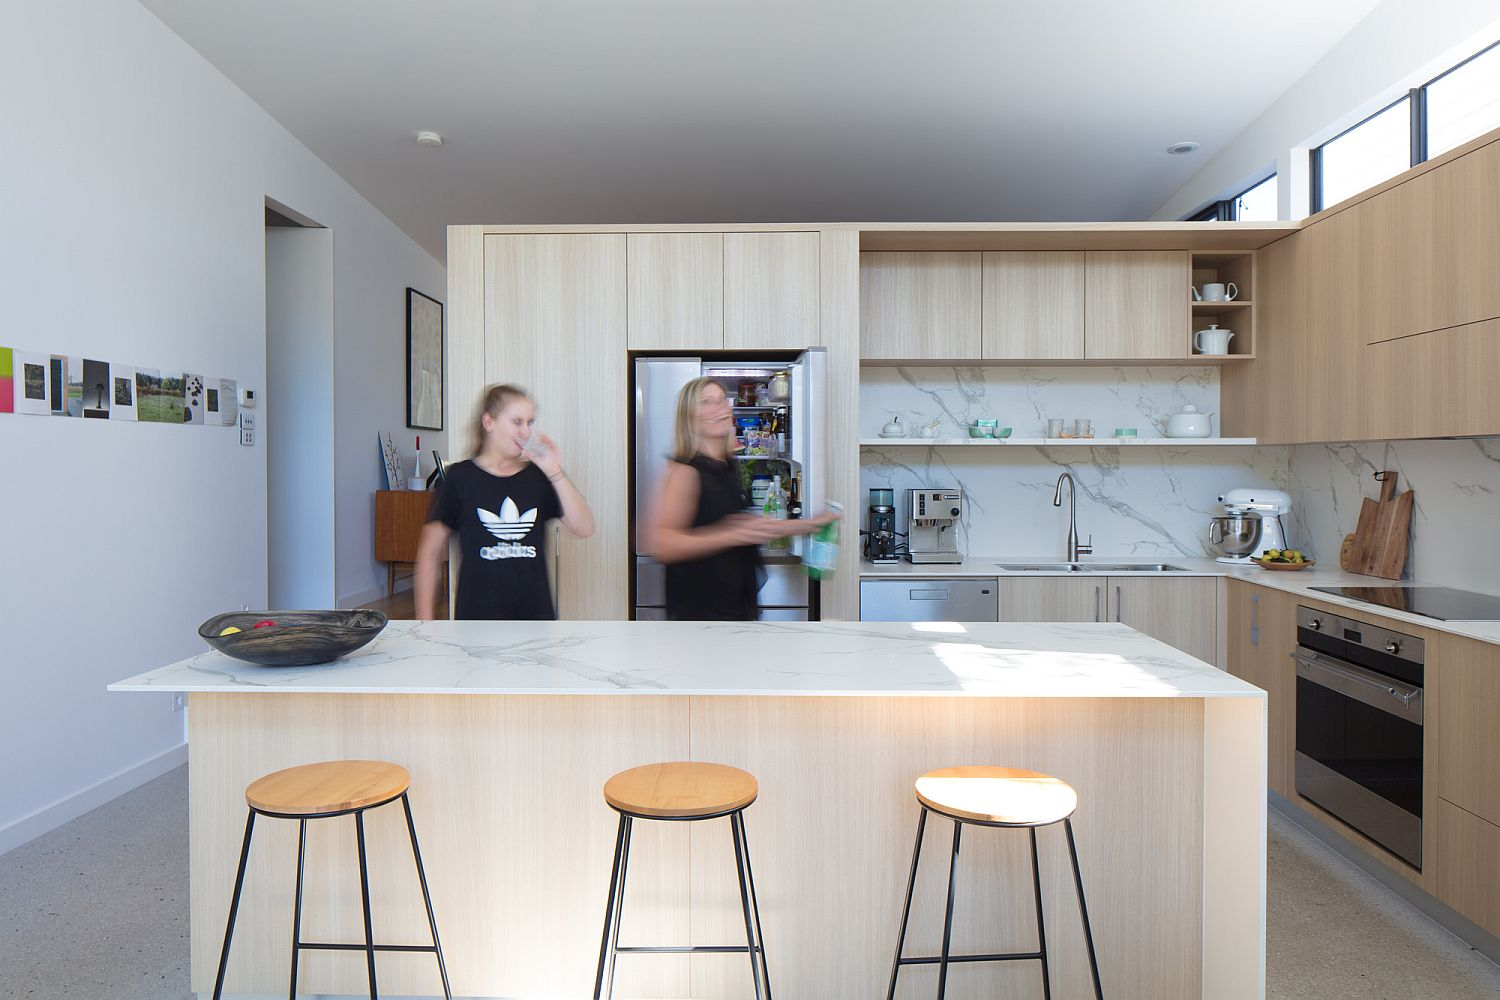 Smart and efficinet kitchen layout with an island that serves as breakfast zone